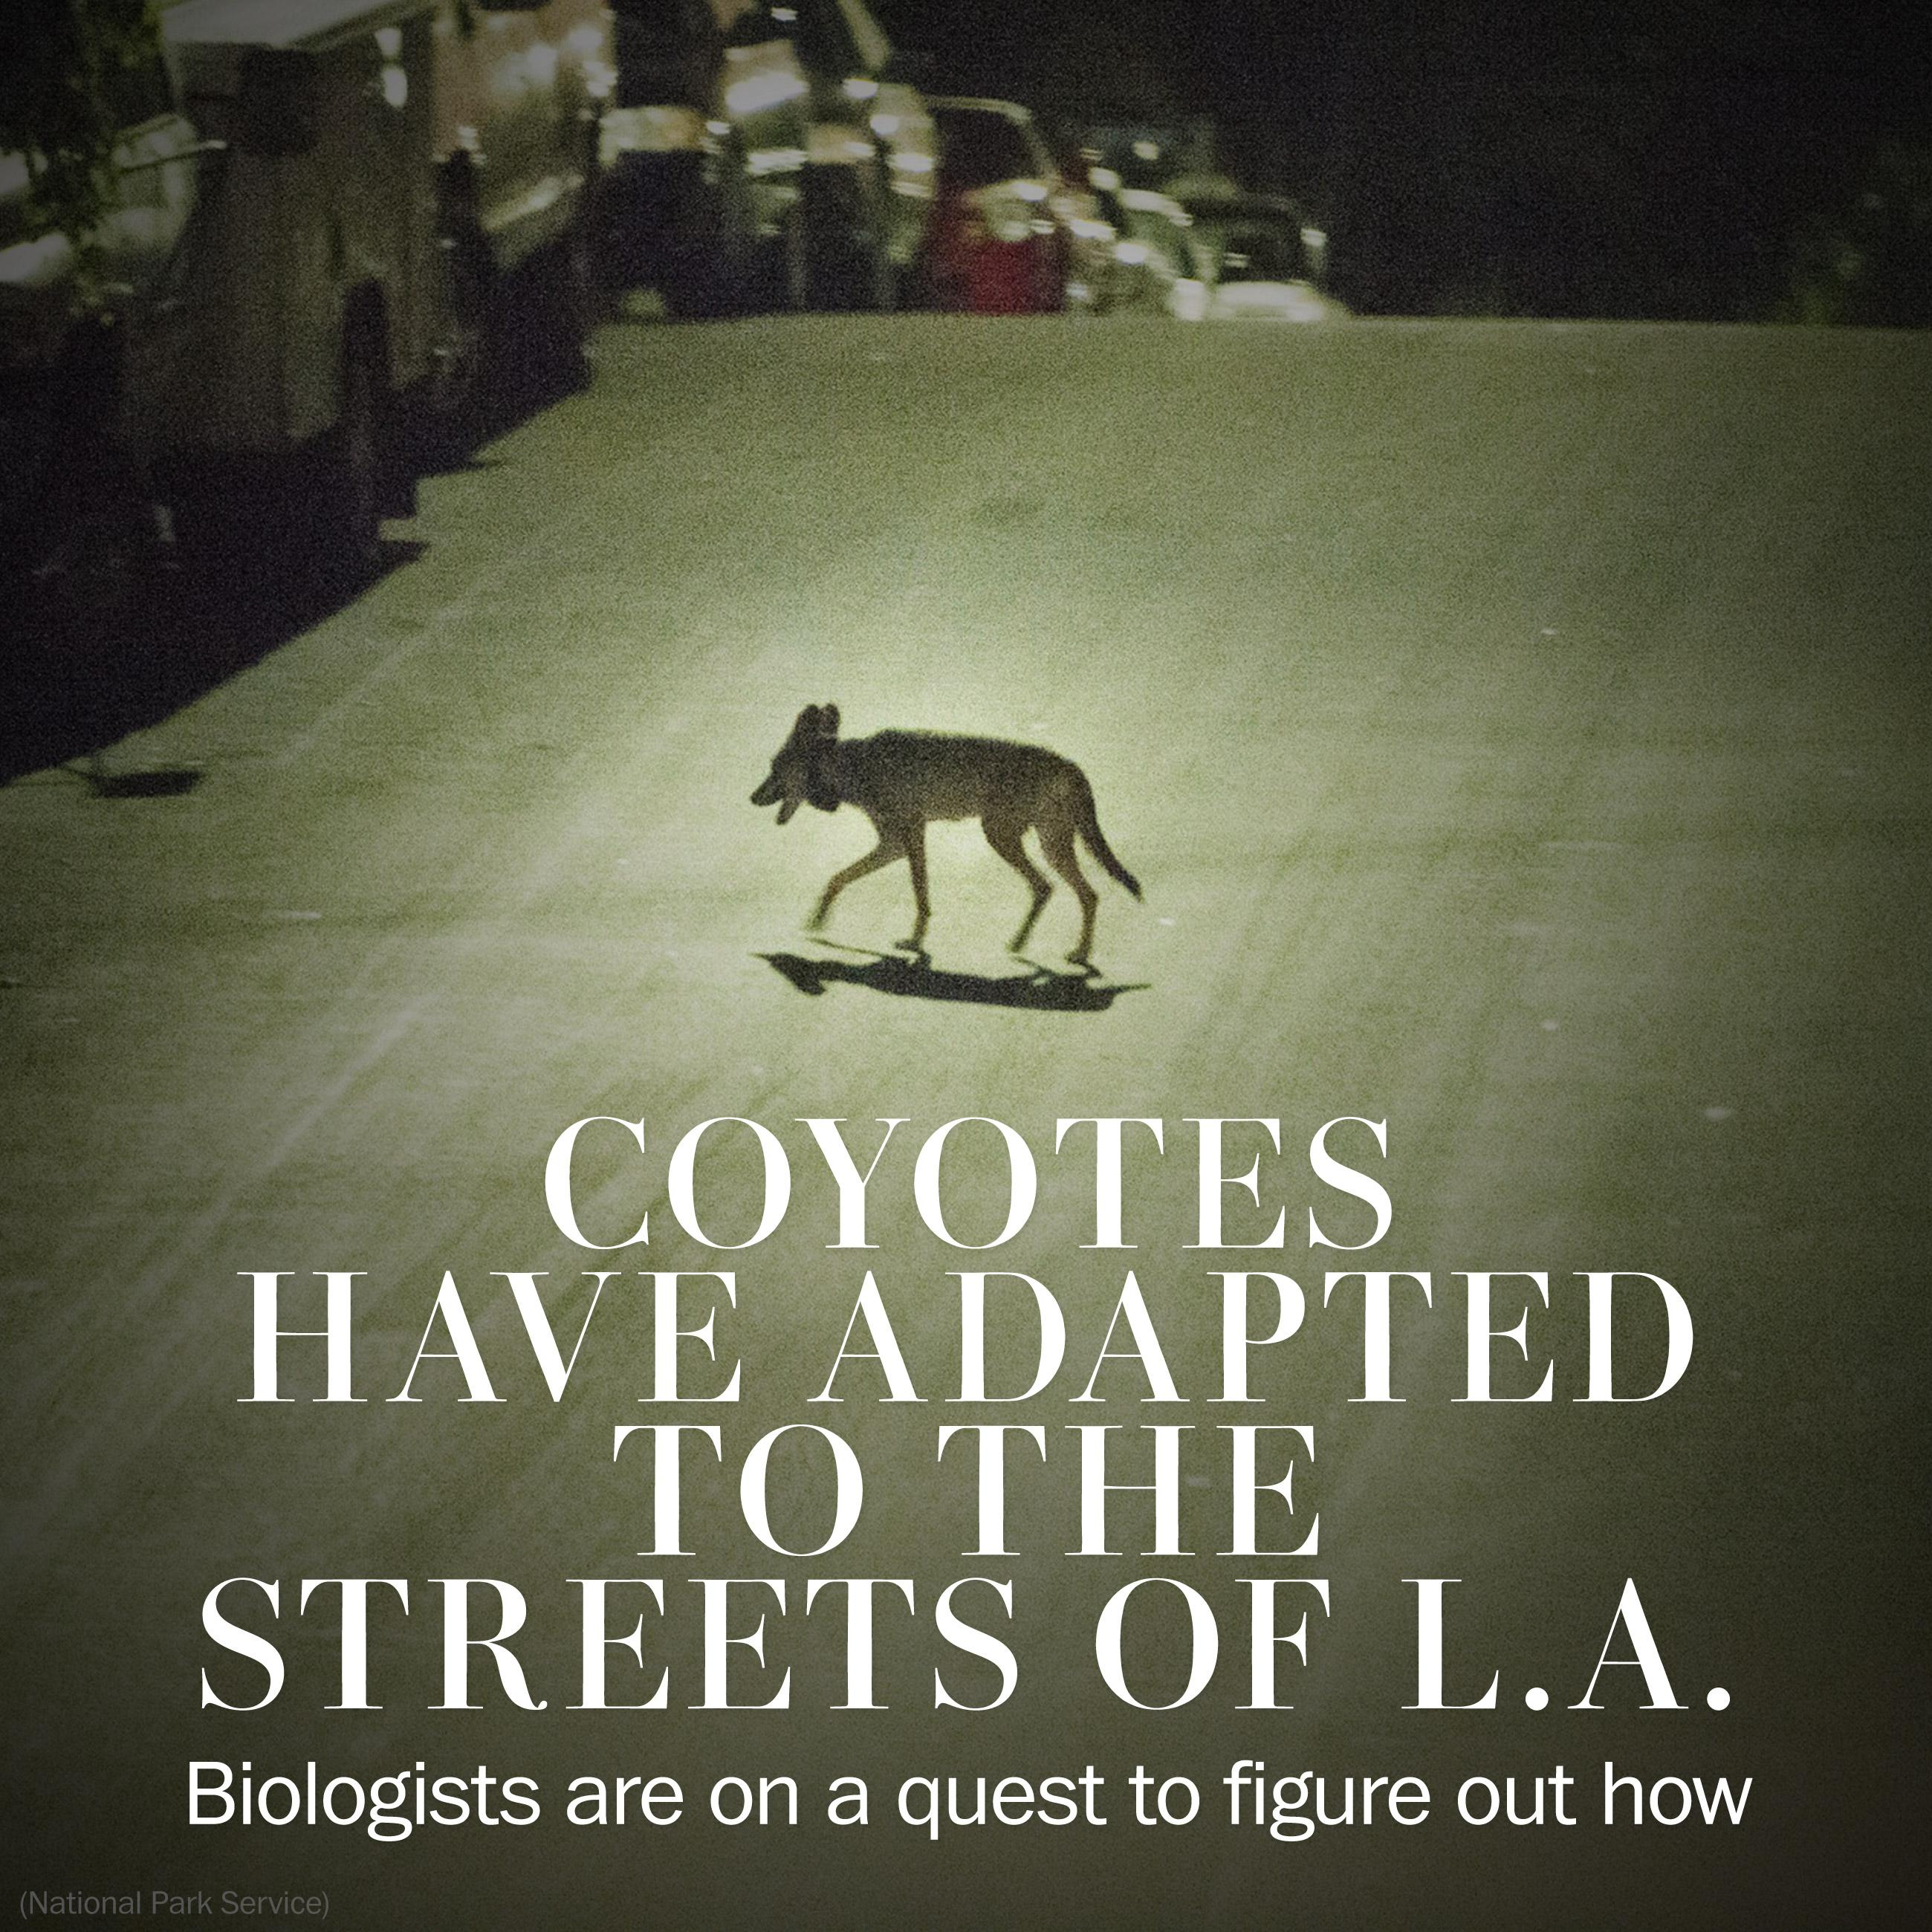 Coyotes have adapted to the streets of L.A., and biologists want to know how